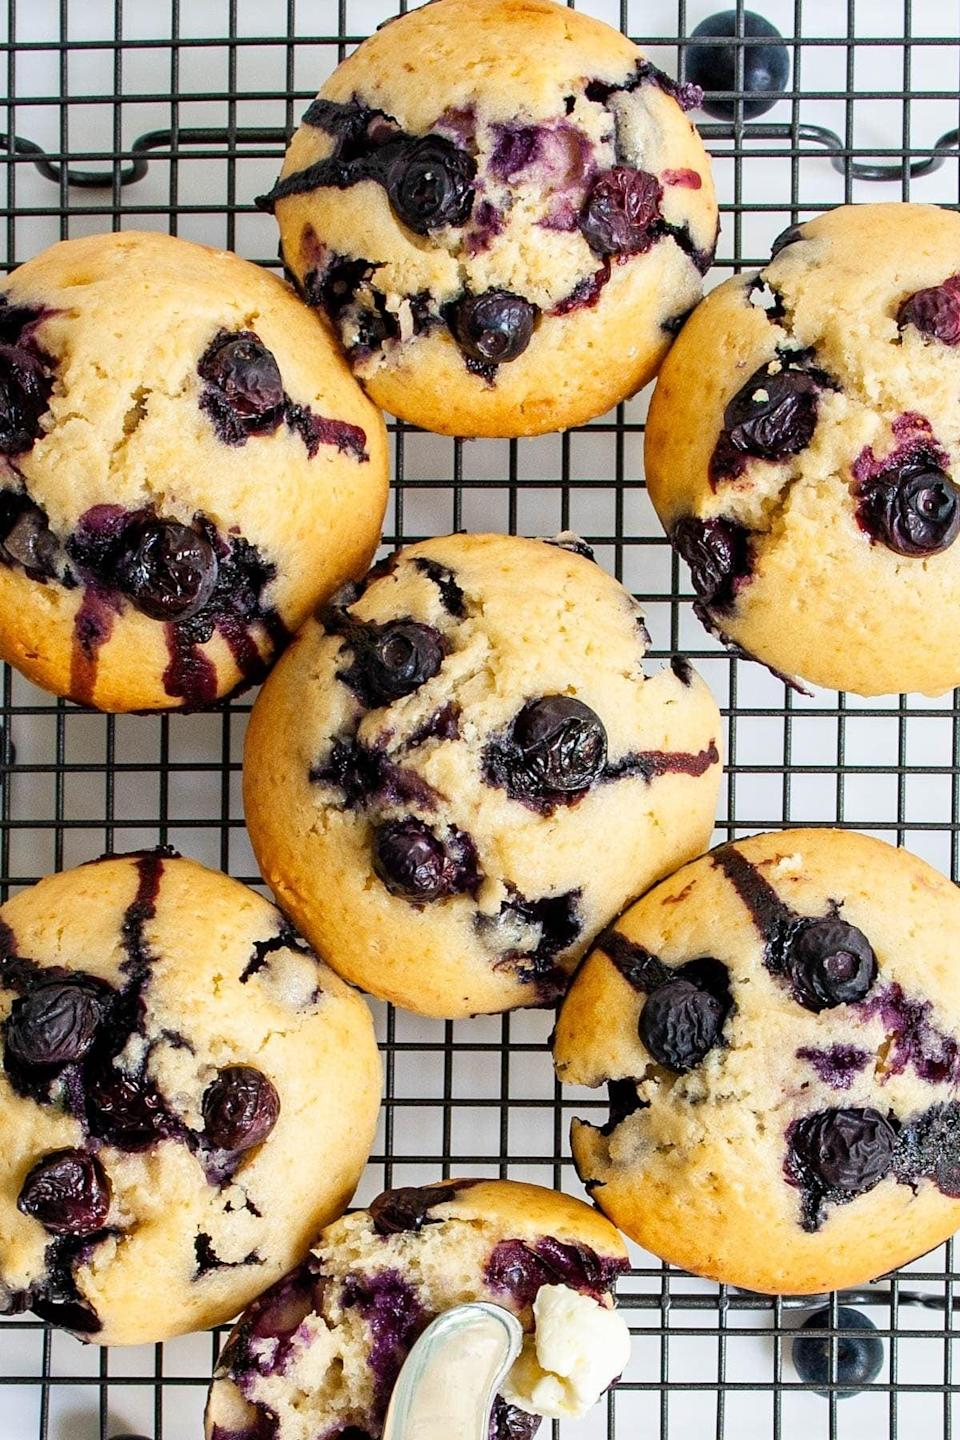 """<a href=""""https://cravinghomecooked.com/bakery-style-blueberry-muffins/"""" rel=""""nofollow noopener"""" target=""""_blank"""" data-ylk=""""slk:Blueberry Muffins"""" class=""""link rapid-noclick-resp""""><h2>Blueberry Muffins</h2></a> <br>We're all missing our local bakery at the moment but with this recipe you'll at least be able to get your blueberry muffin fix.<br><br><br><br>"""